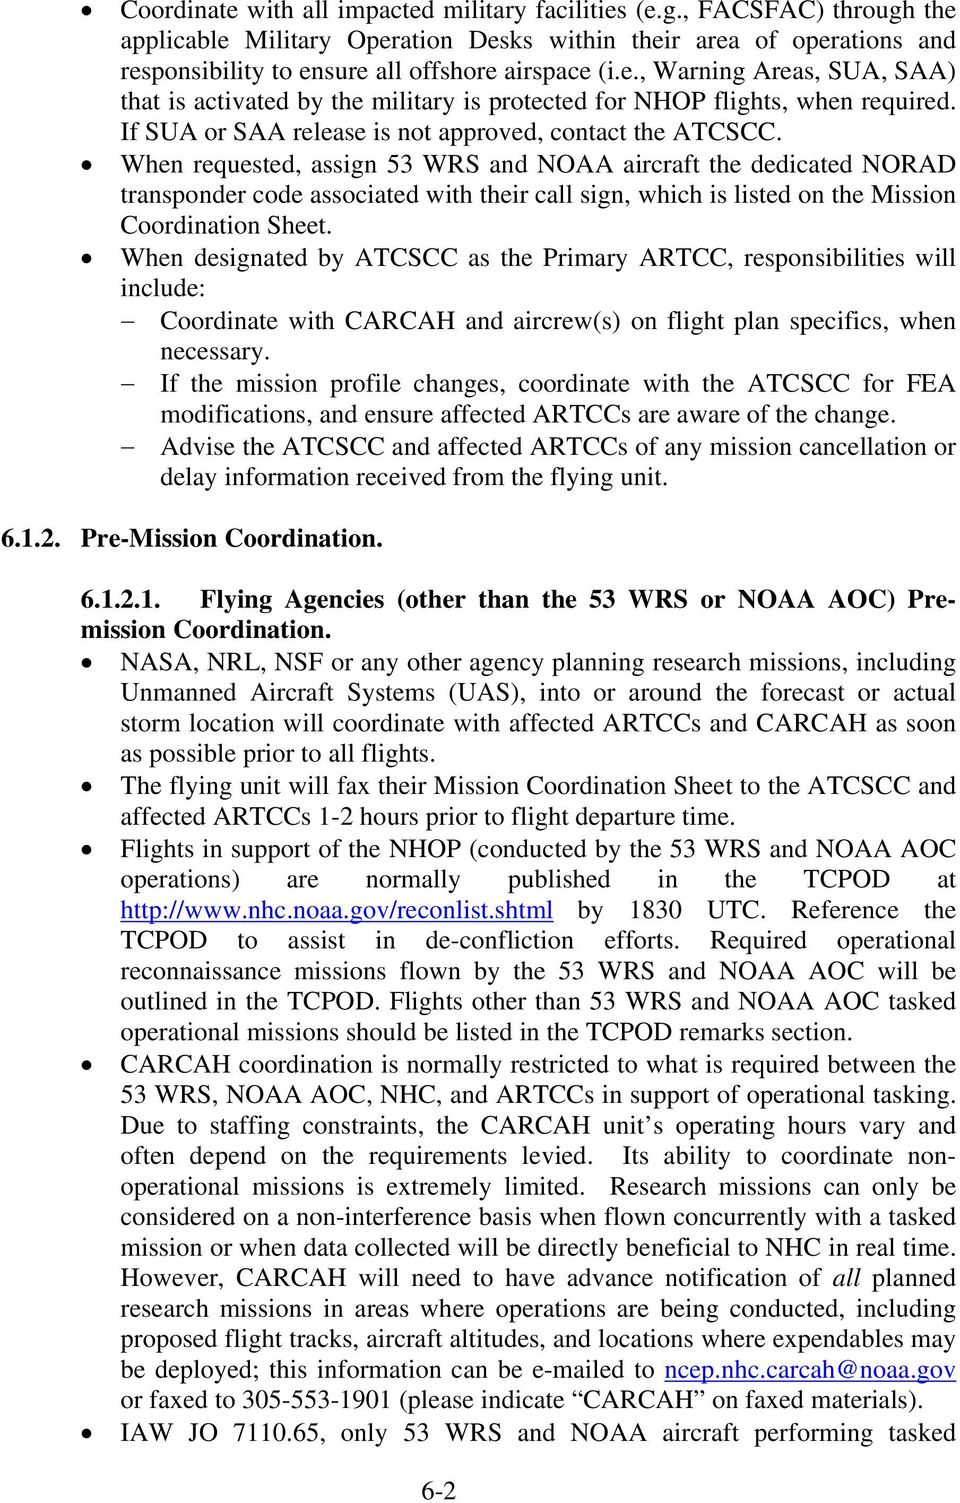 When requested, assign 53 WRS and NOAA aircraft the dedicated NORAD transponder code associated with their call sign, which is listed on the Mission Coordination Sheet.